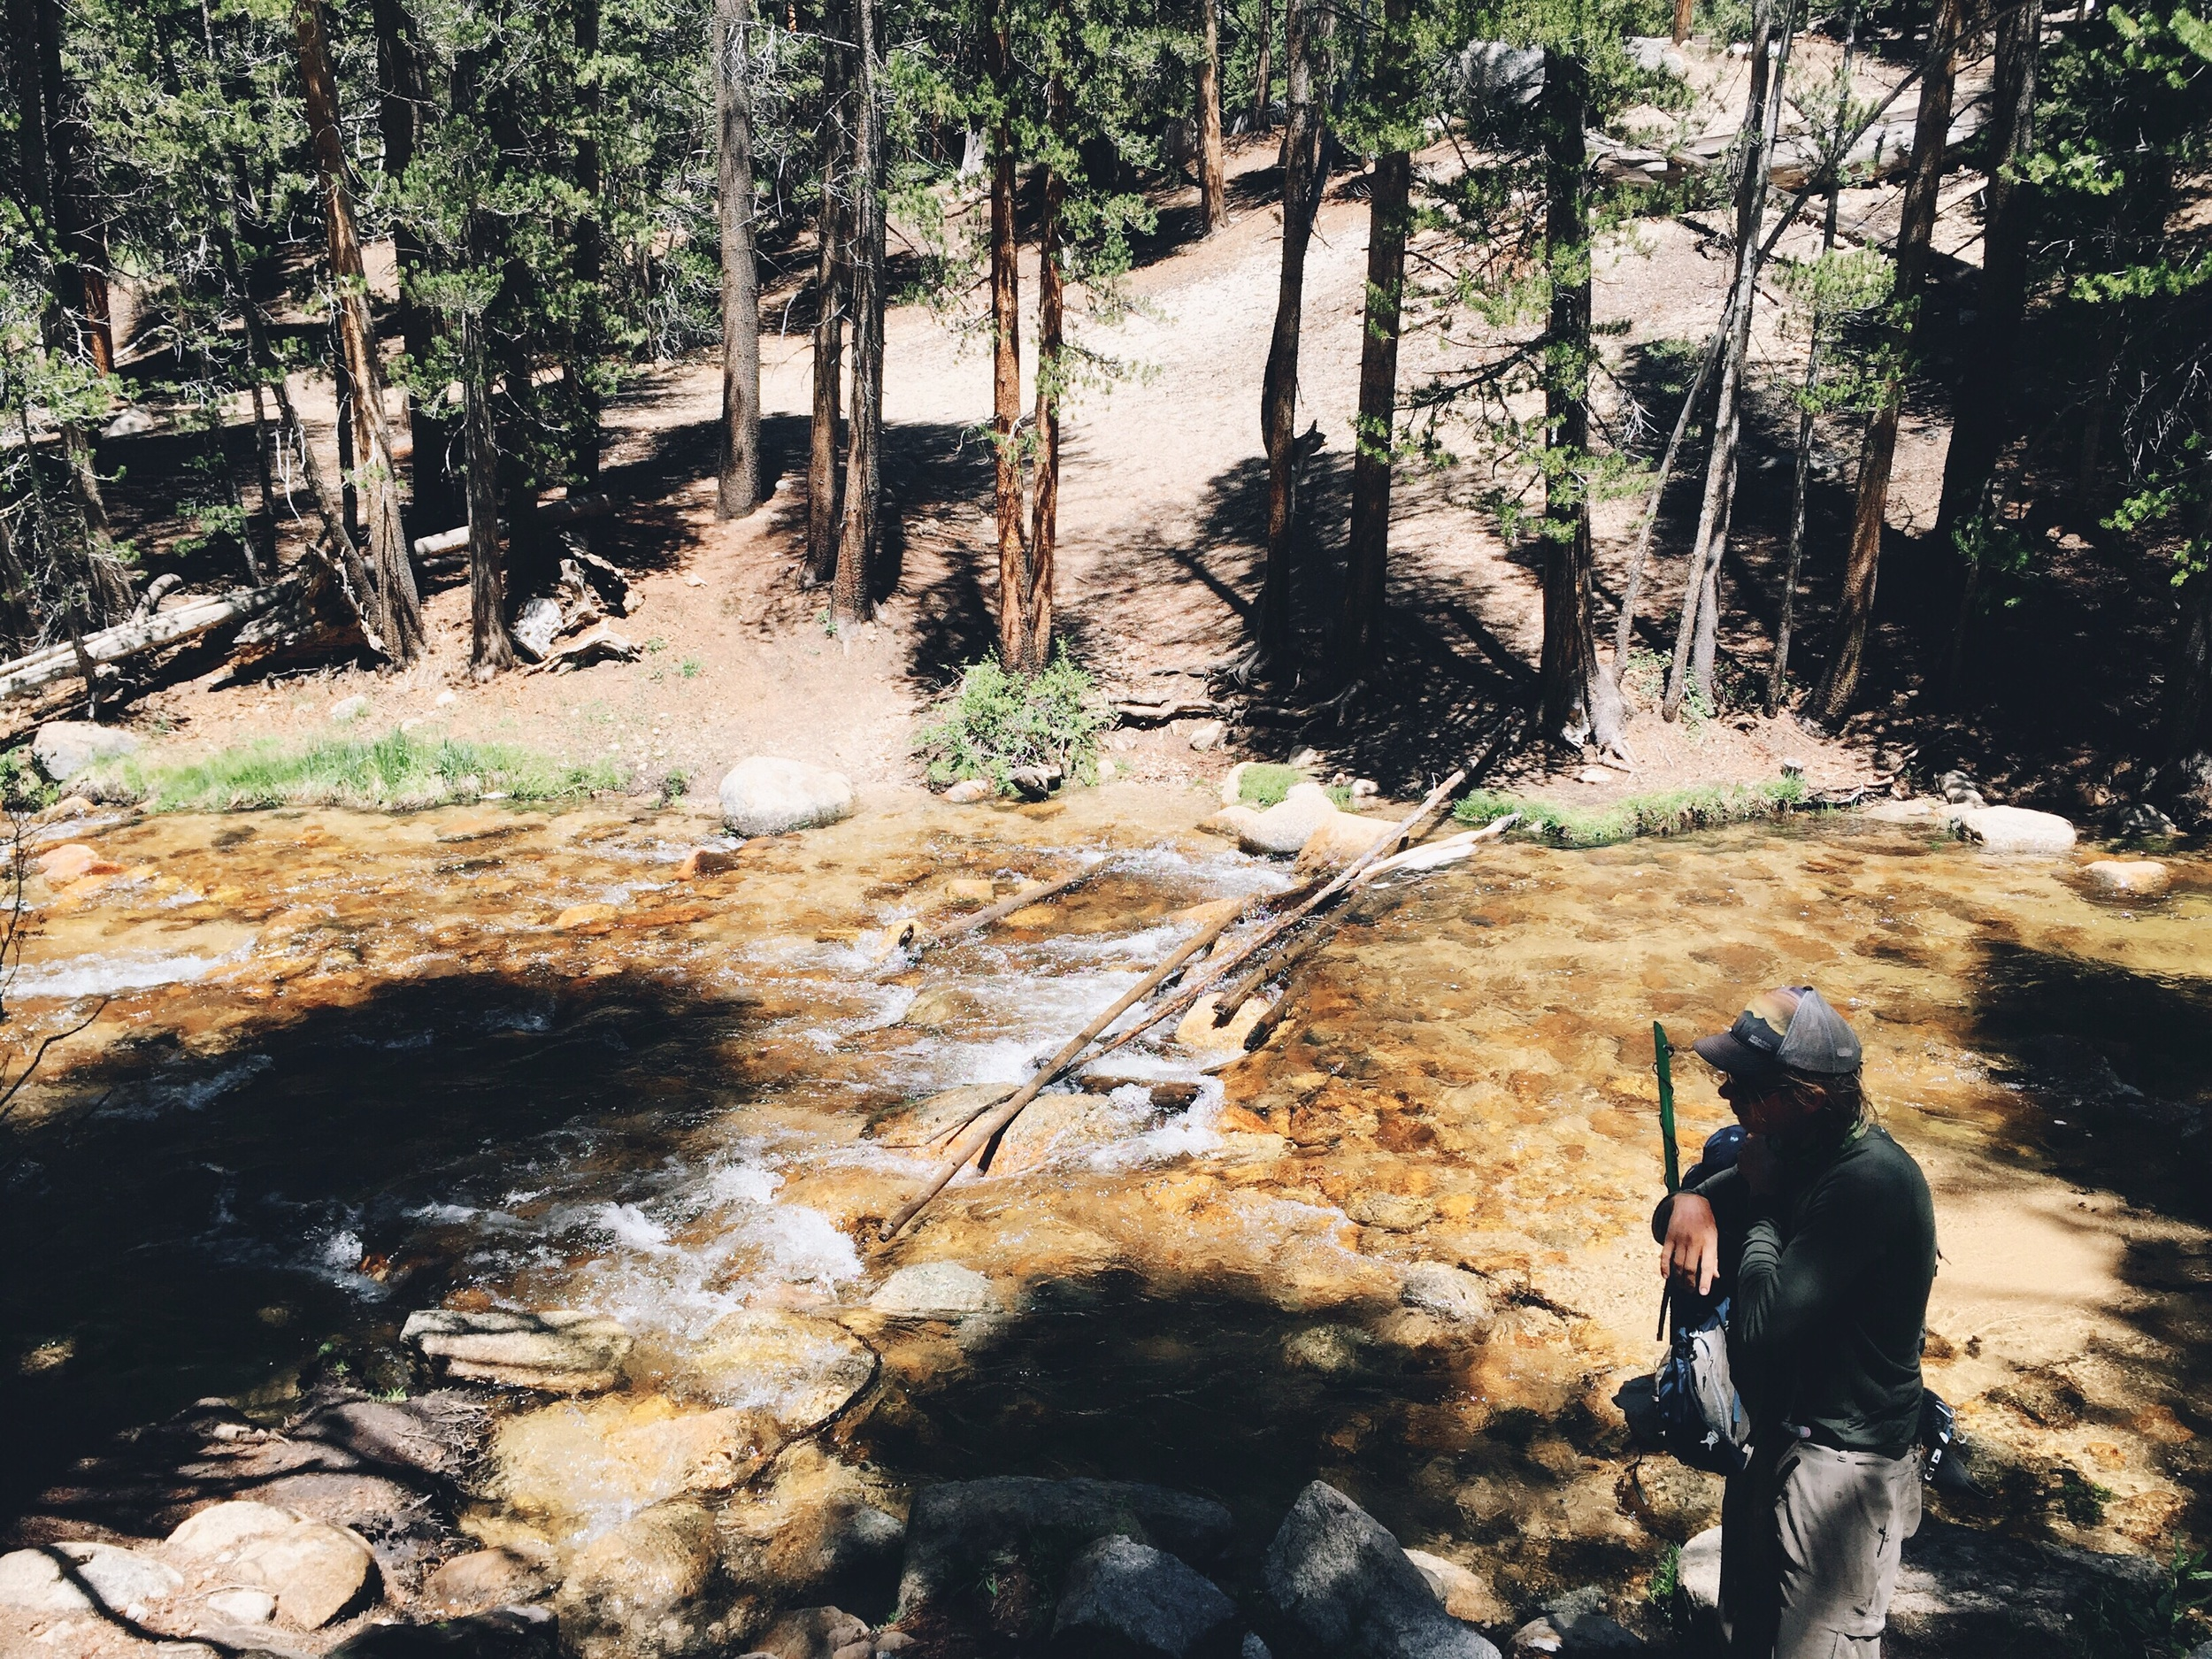 Our first river crossing at rock creek.